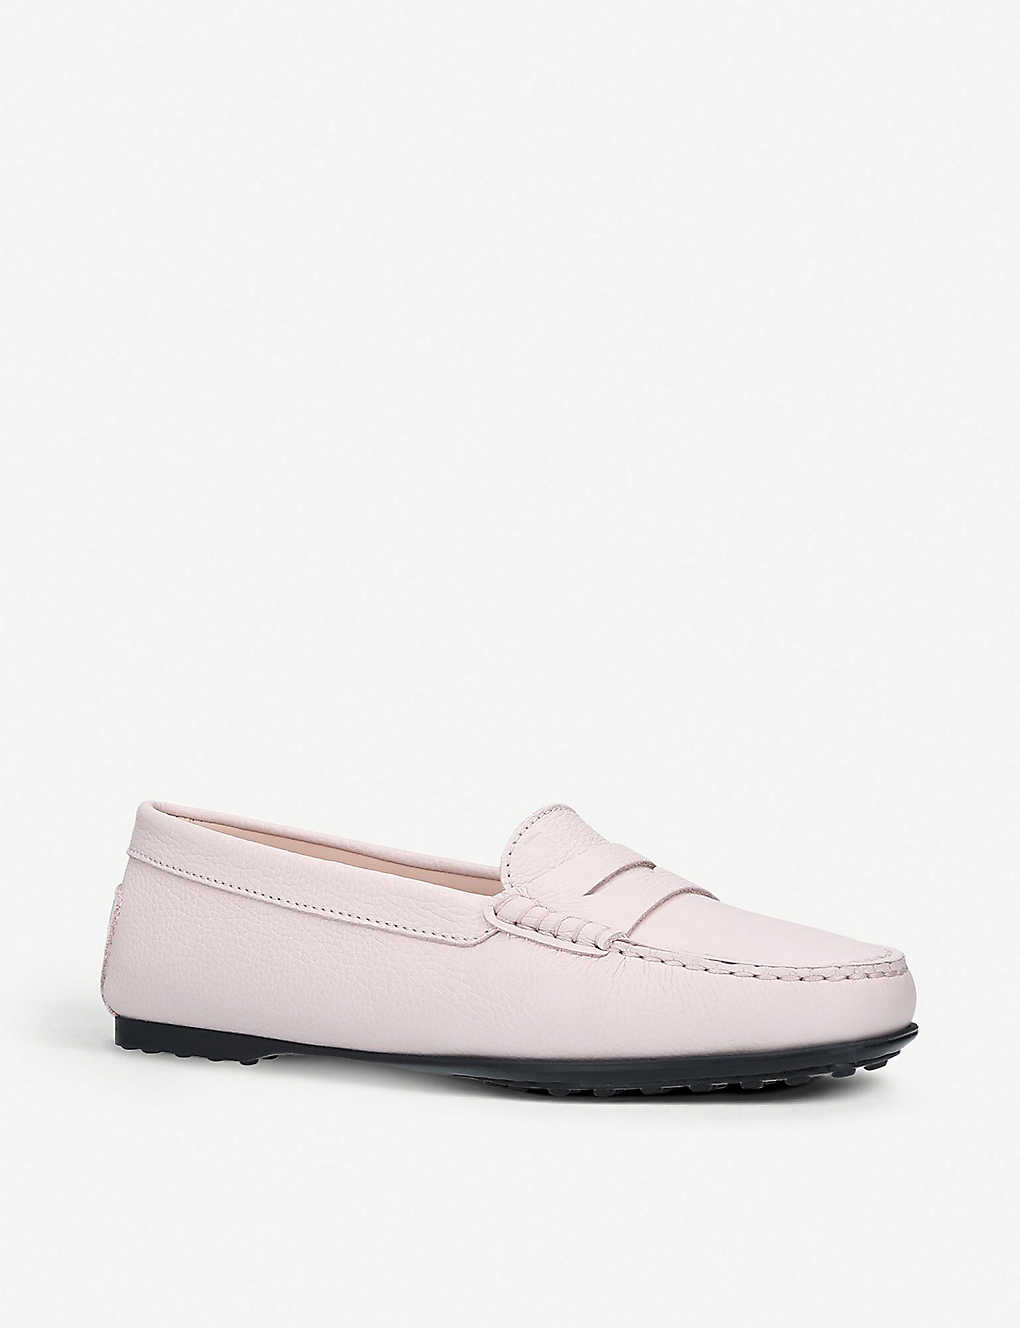 9c92ab00d68 ... City Gommino leather penny loafers - Other ...